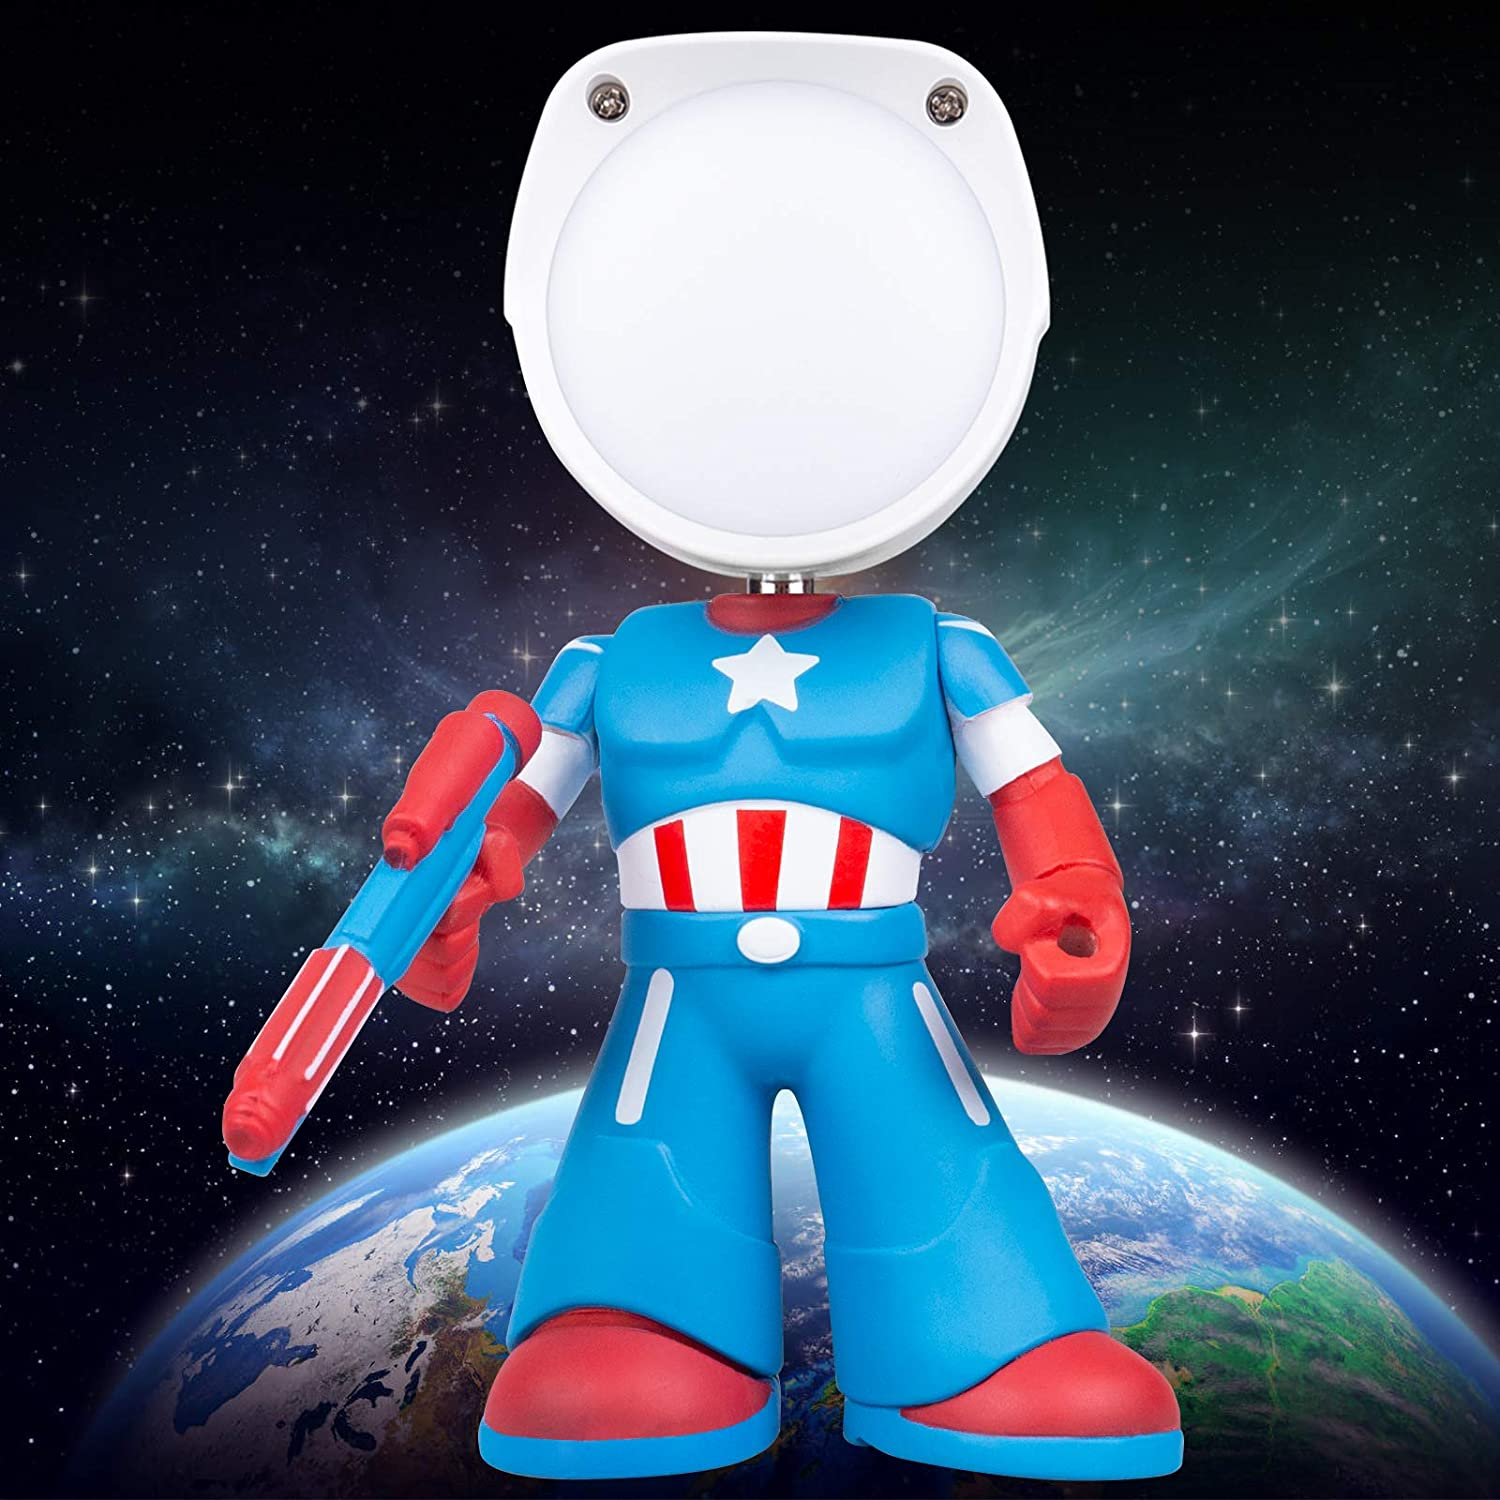 Table Light for Kids, Small Desk Lamp, Captain America Night Lamp with Touch Control, Rechargeable Nursery Cartoon Night Lights, Best Gift for Adult, Kids, Boys and Girls,Blue